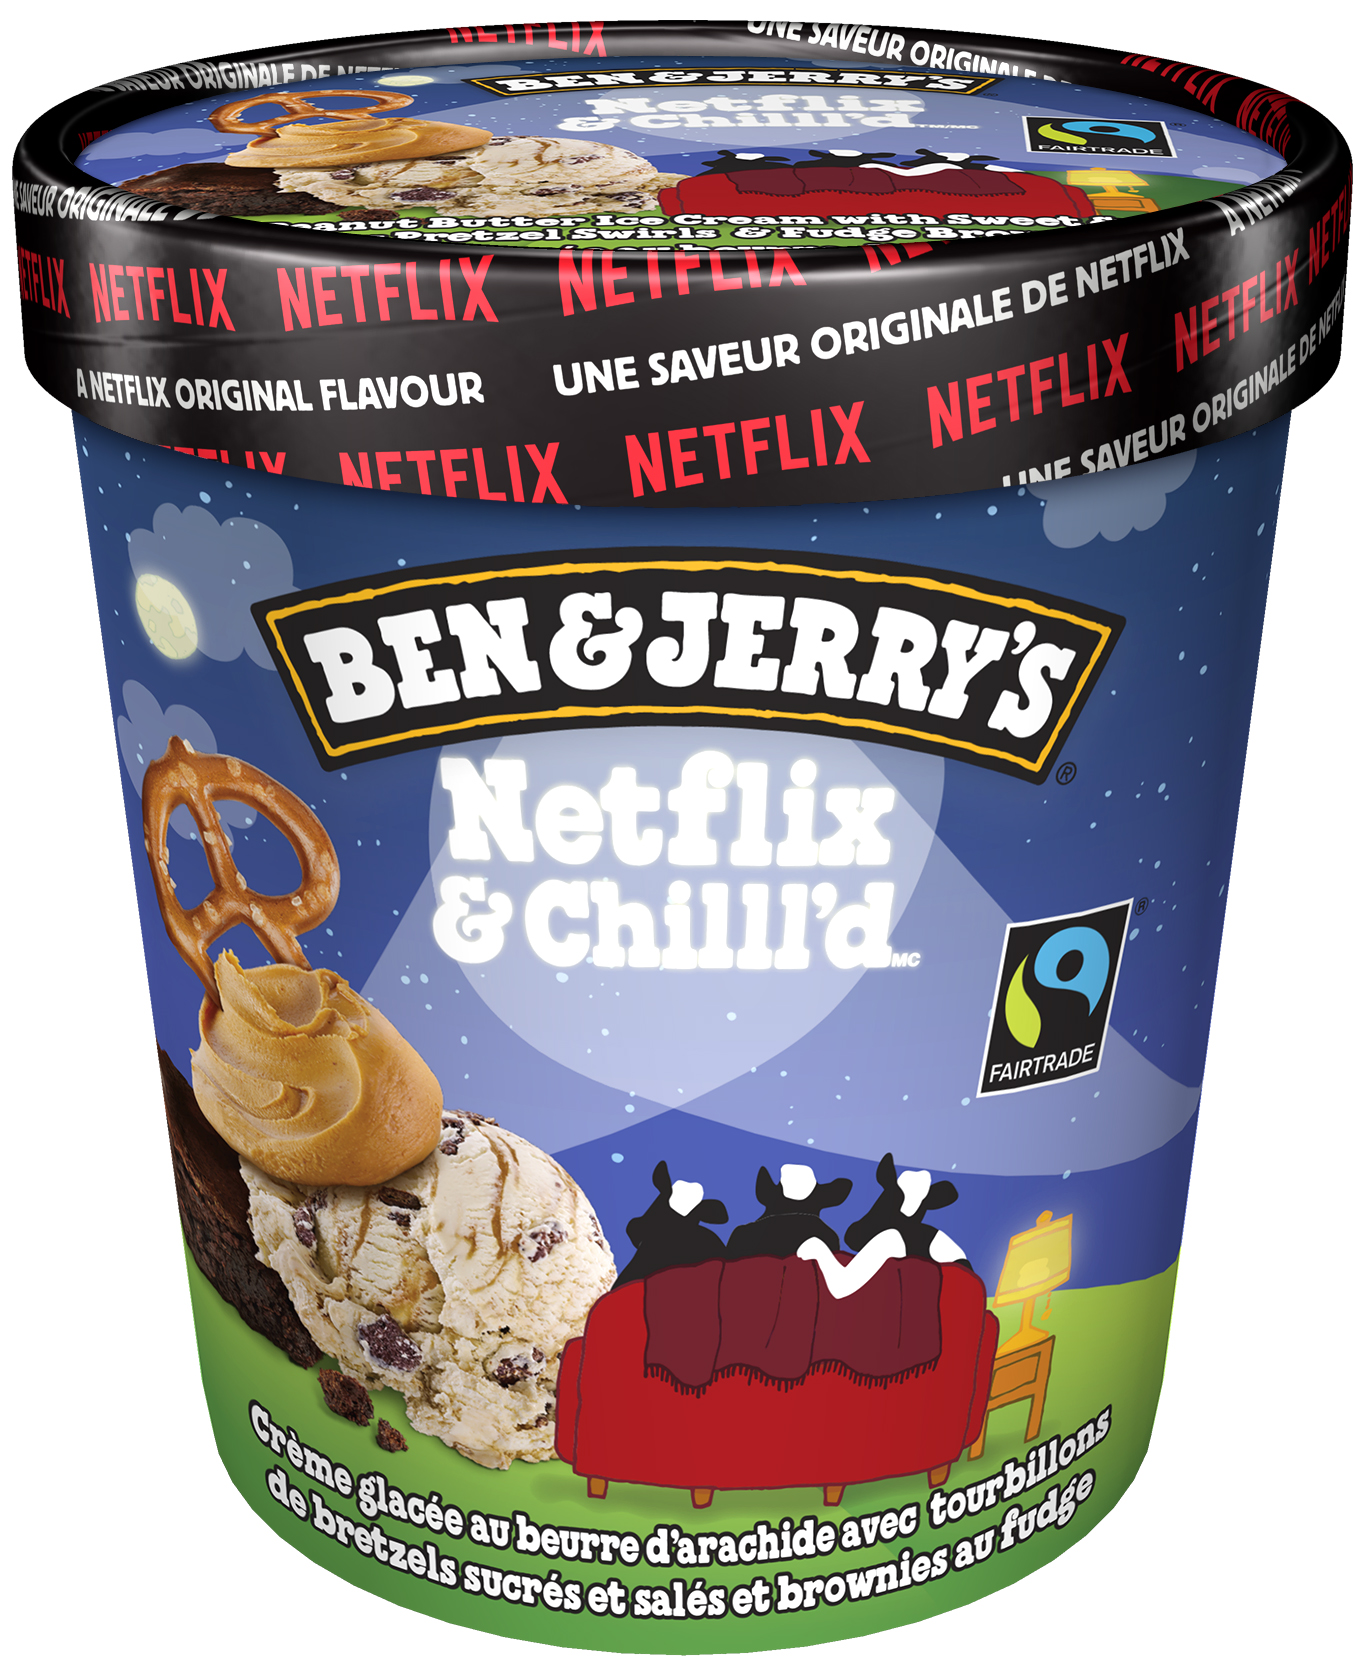 Ben & Jerry's - Netflix & Chill'd 1